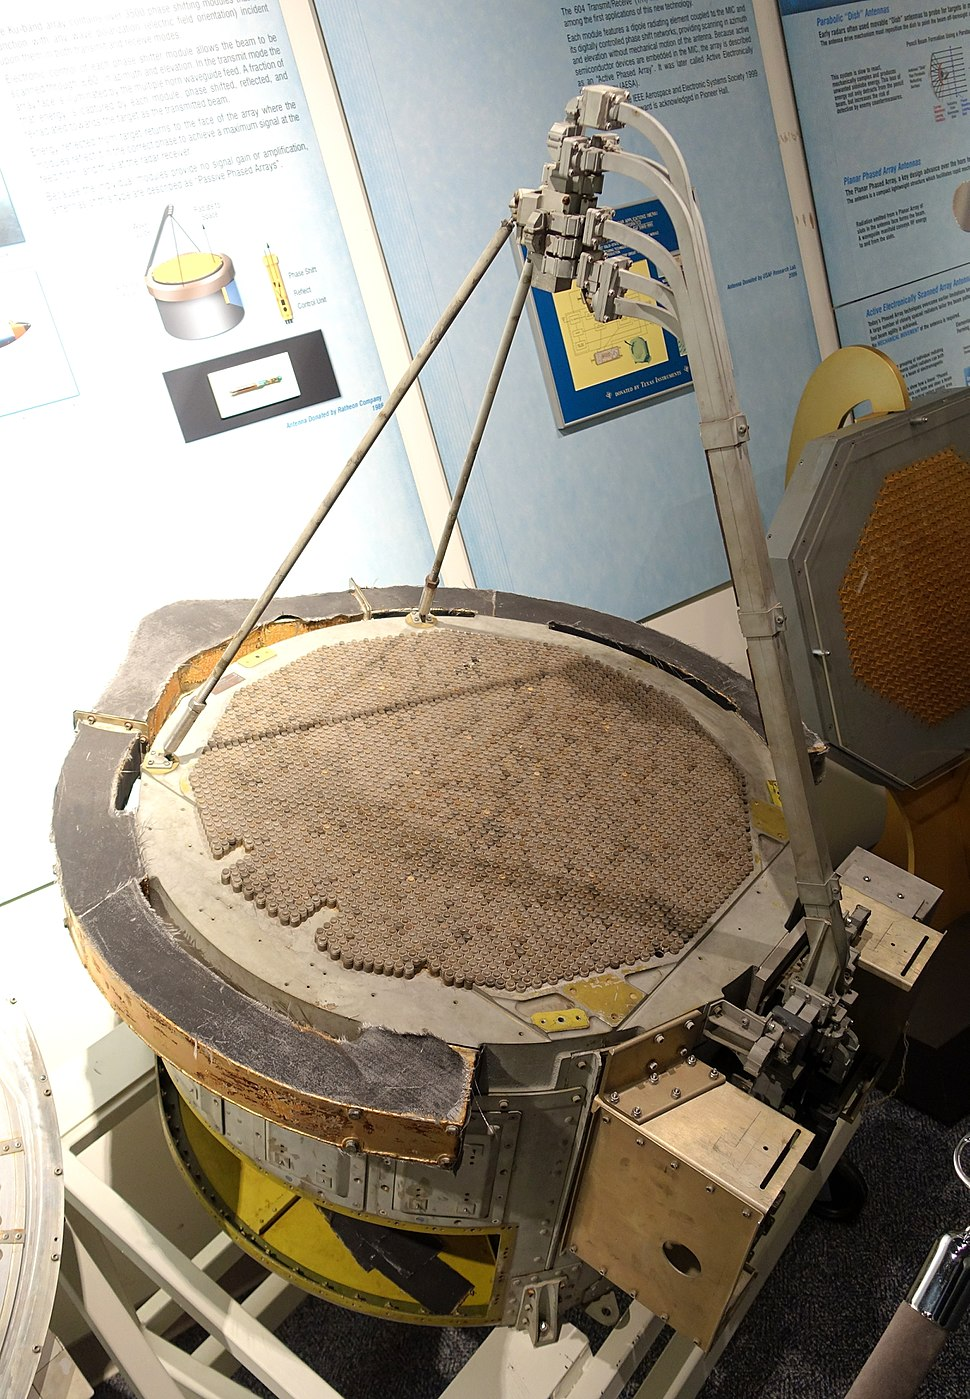 RARF Antenna, Reflecting Array Radio Frequency, Raytheon, 1968-1969, Ku-band, over 3500 phase shifting modules, for the AN-APQ-140 radar - National Electronics Museum - DSC00376